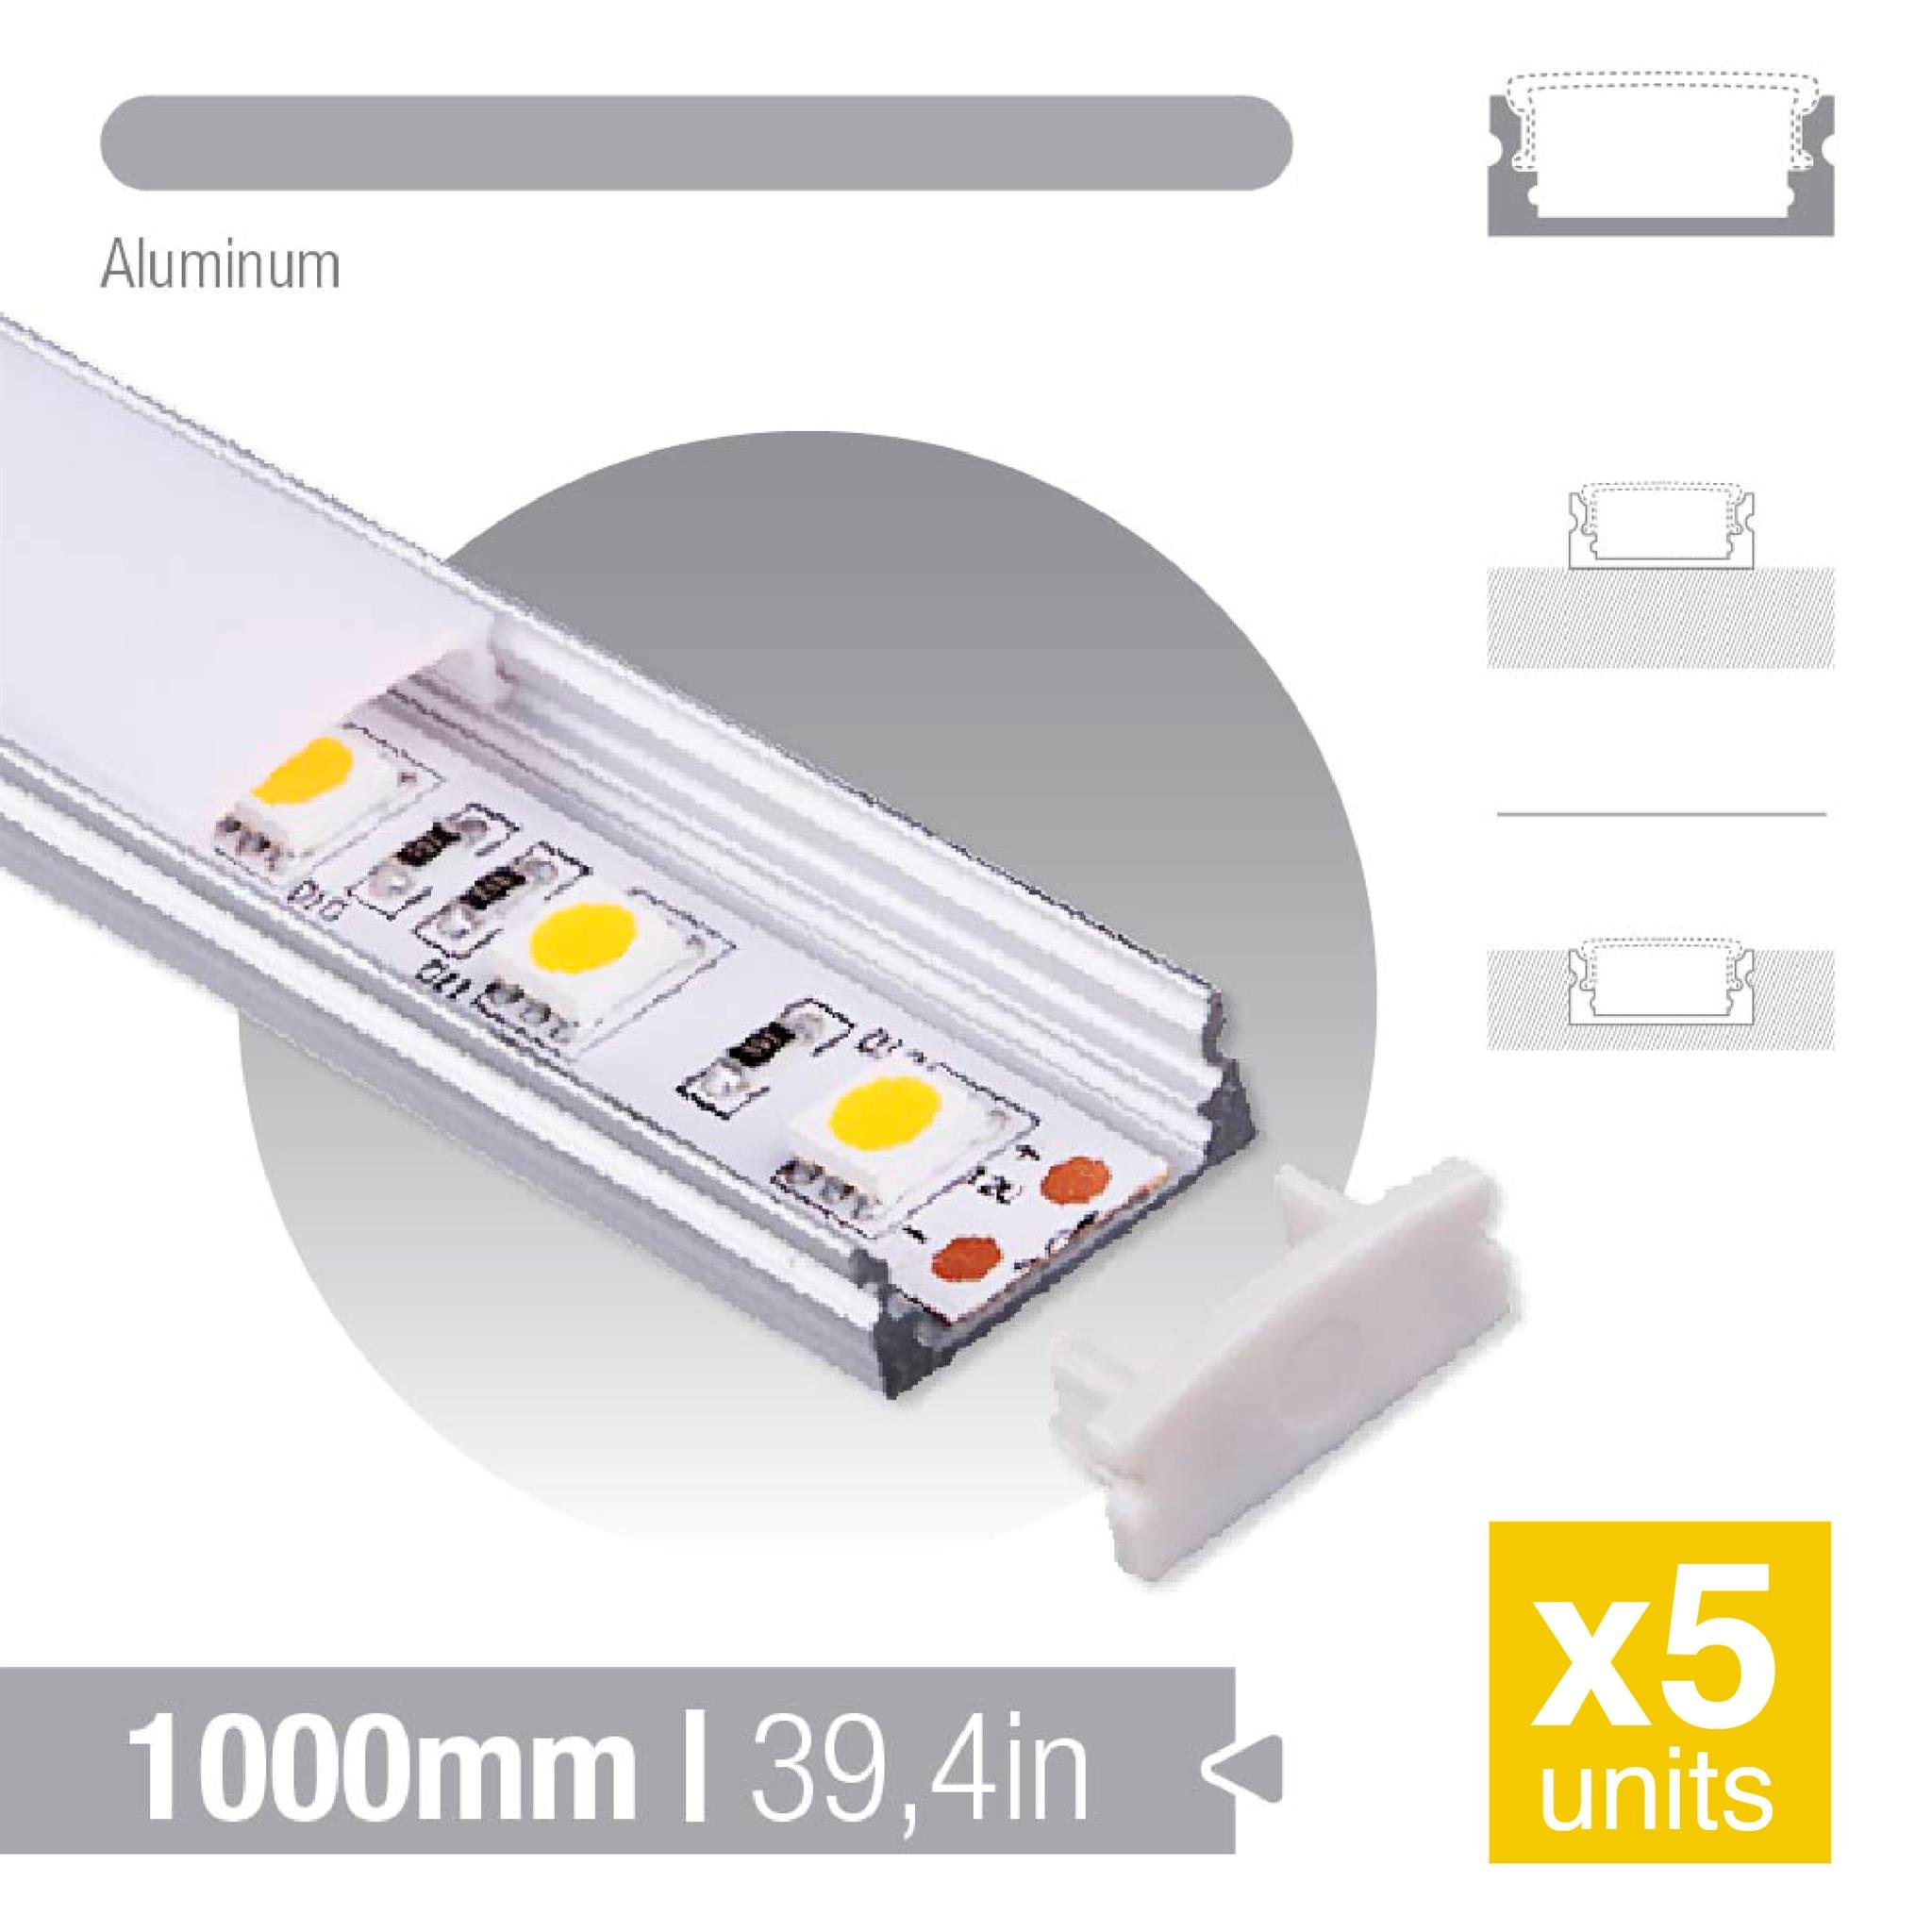 DEMASLED 5 Pack - Aluminun profile/Aluminum channel for led strip KIT Milky cover 7mm/0,27in Deep 1m/39,37 Length